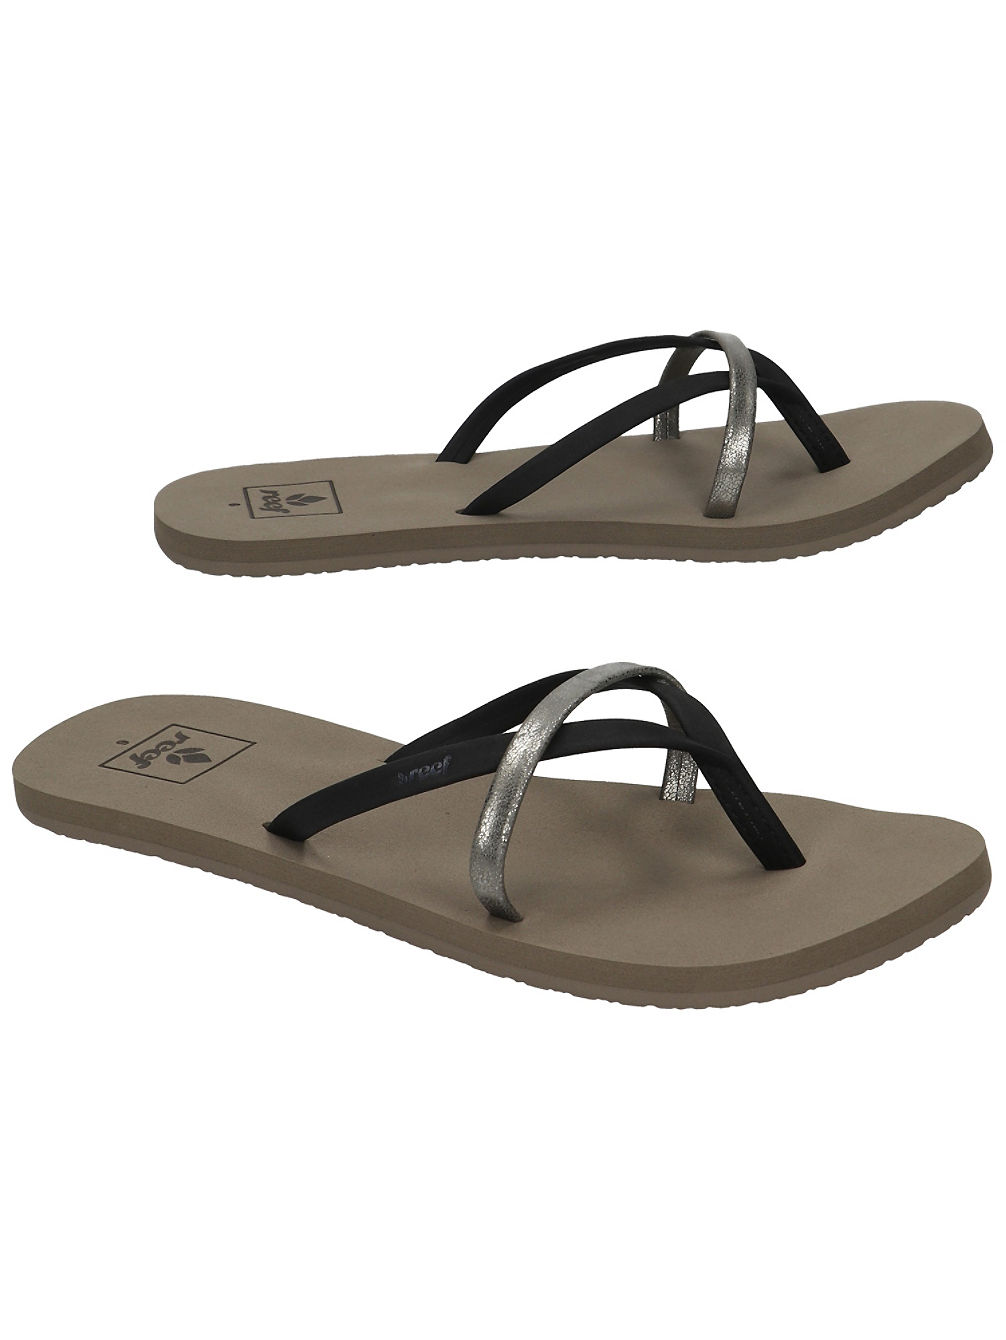 Bliss Wild Sandalen Frauen